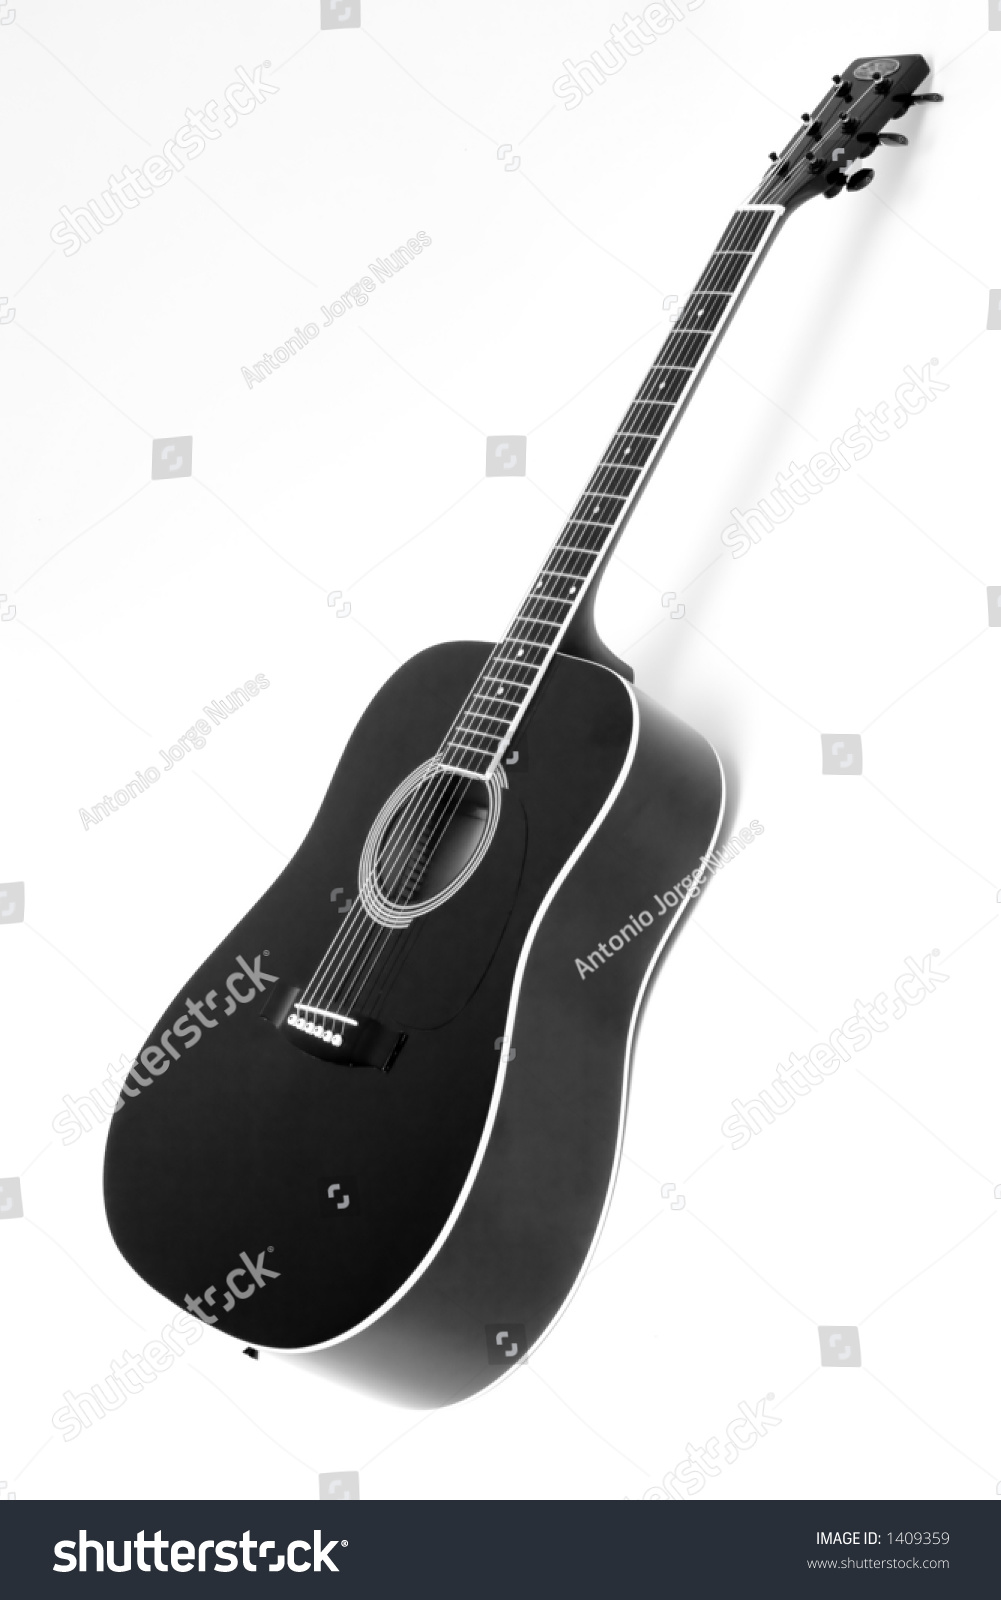 black and white acoustic guitar on white background stock photo 1409359 shutterstock. Black Bedroom Furniture Sets. Home Design Ideas